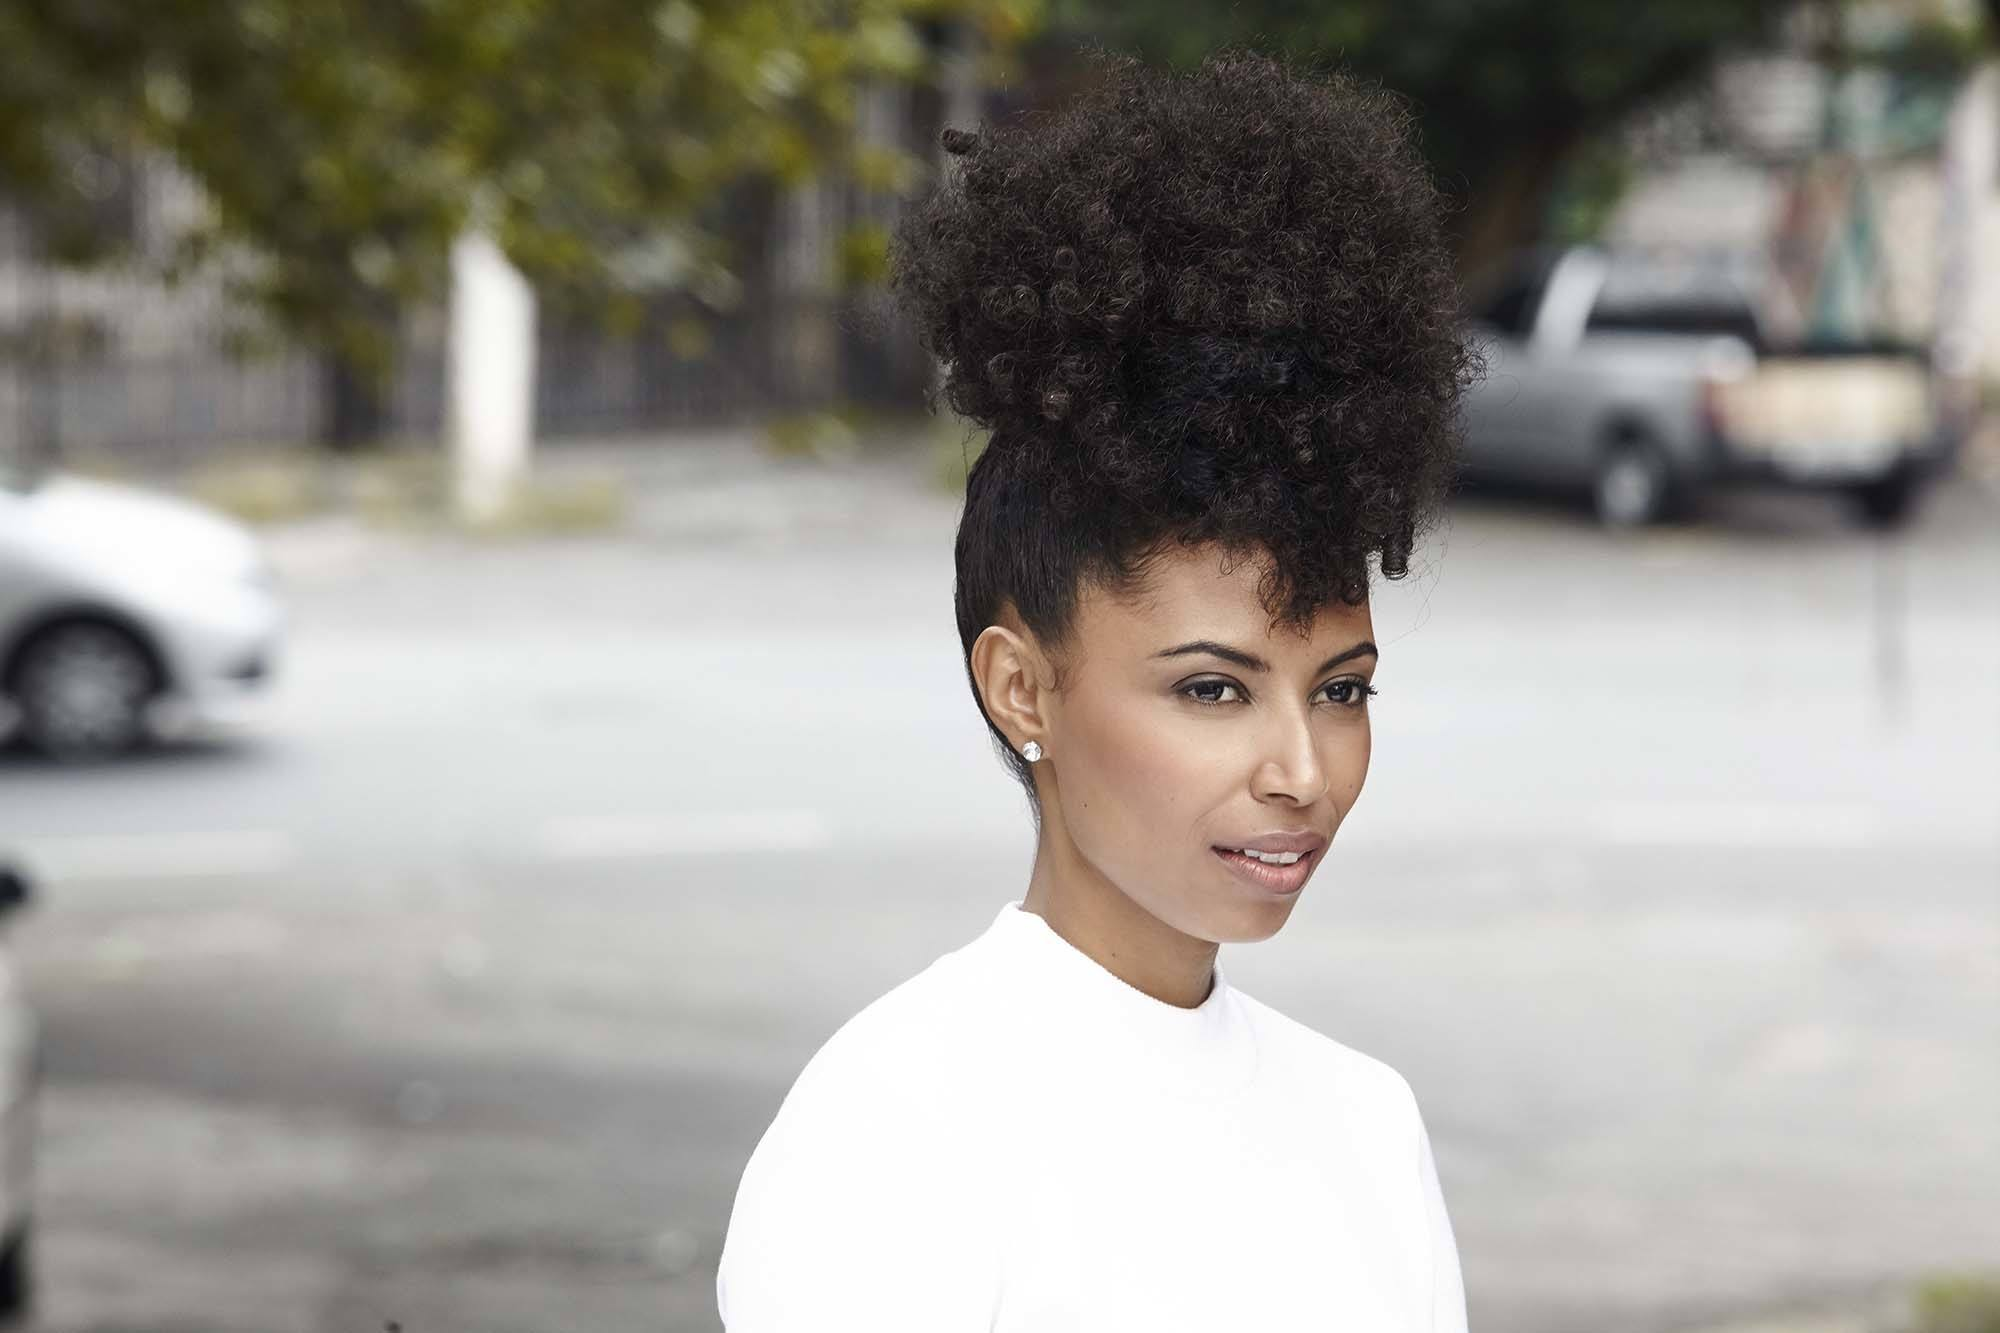 black hairstyles: close up shot of woman with natural chocolate brown hair styled into a pineapple updo, wearing white and posing on the street